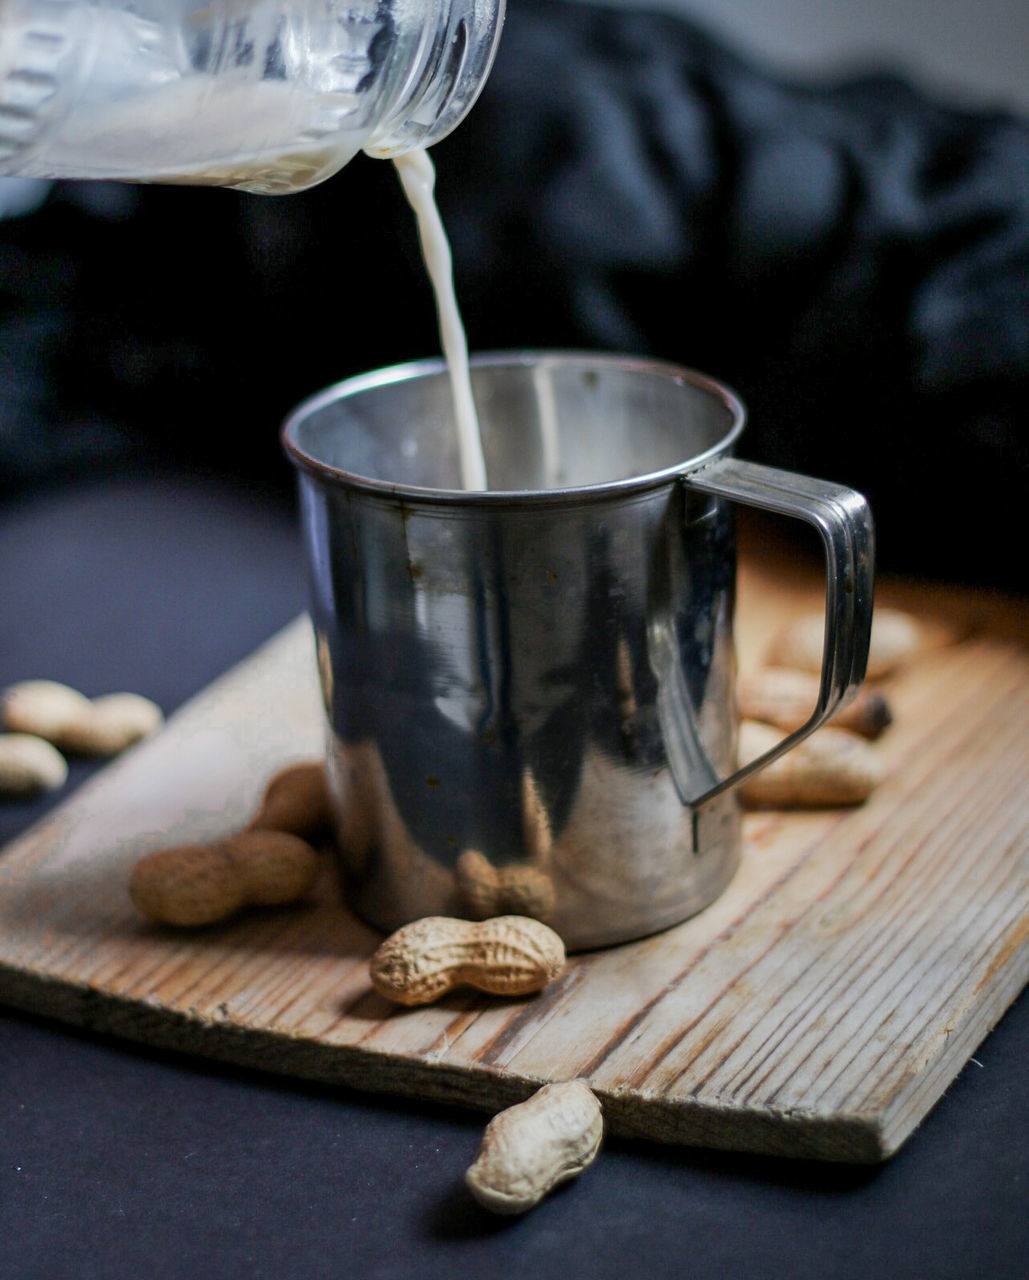 food and drink, refreshment, drink, table, indoors, cup, close-up, wood - material, focus on foreground, food, kitchen utensil, freshness, pouring, mug, no people, still life, hot drink, eating utensil, tea, glass, non-alcoholic beverage, tea cup